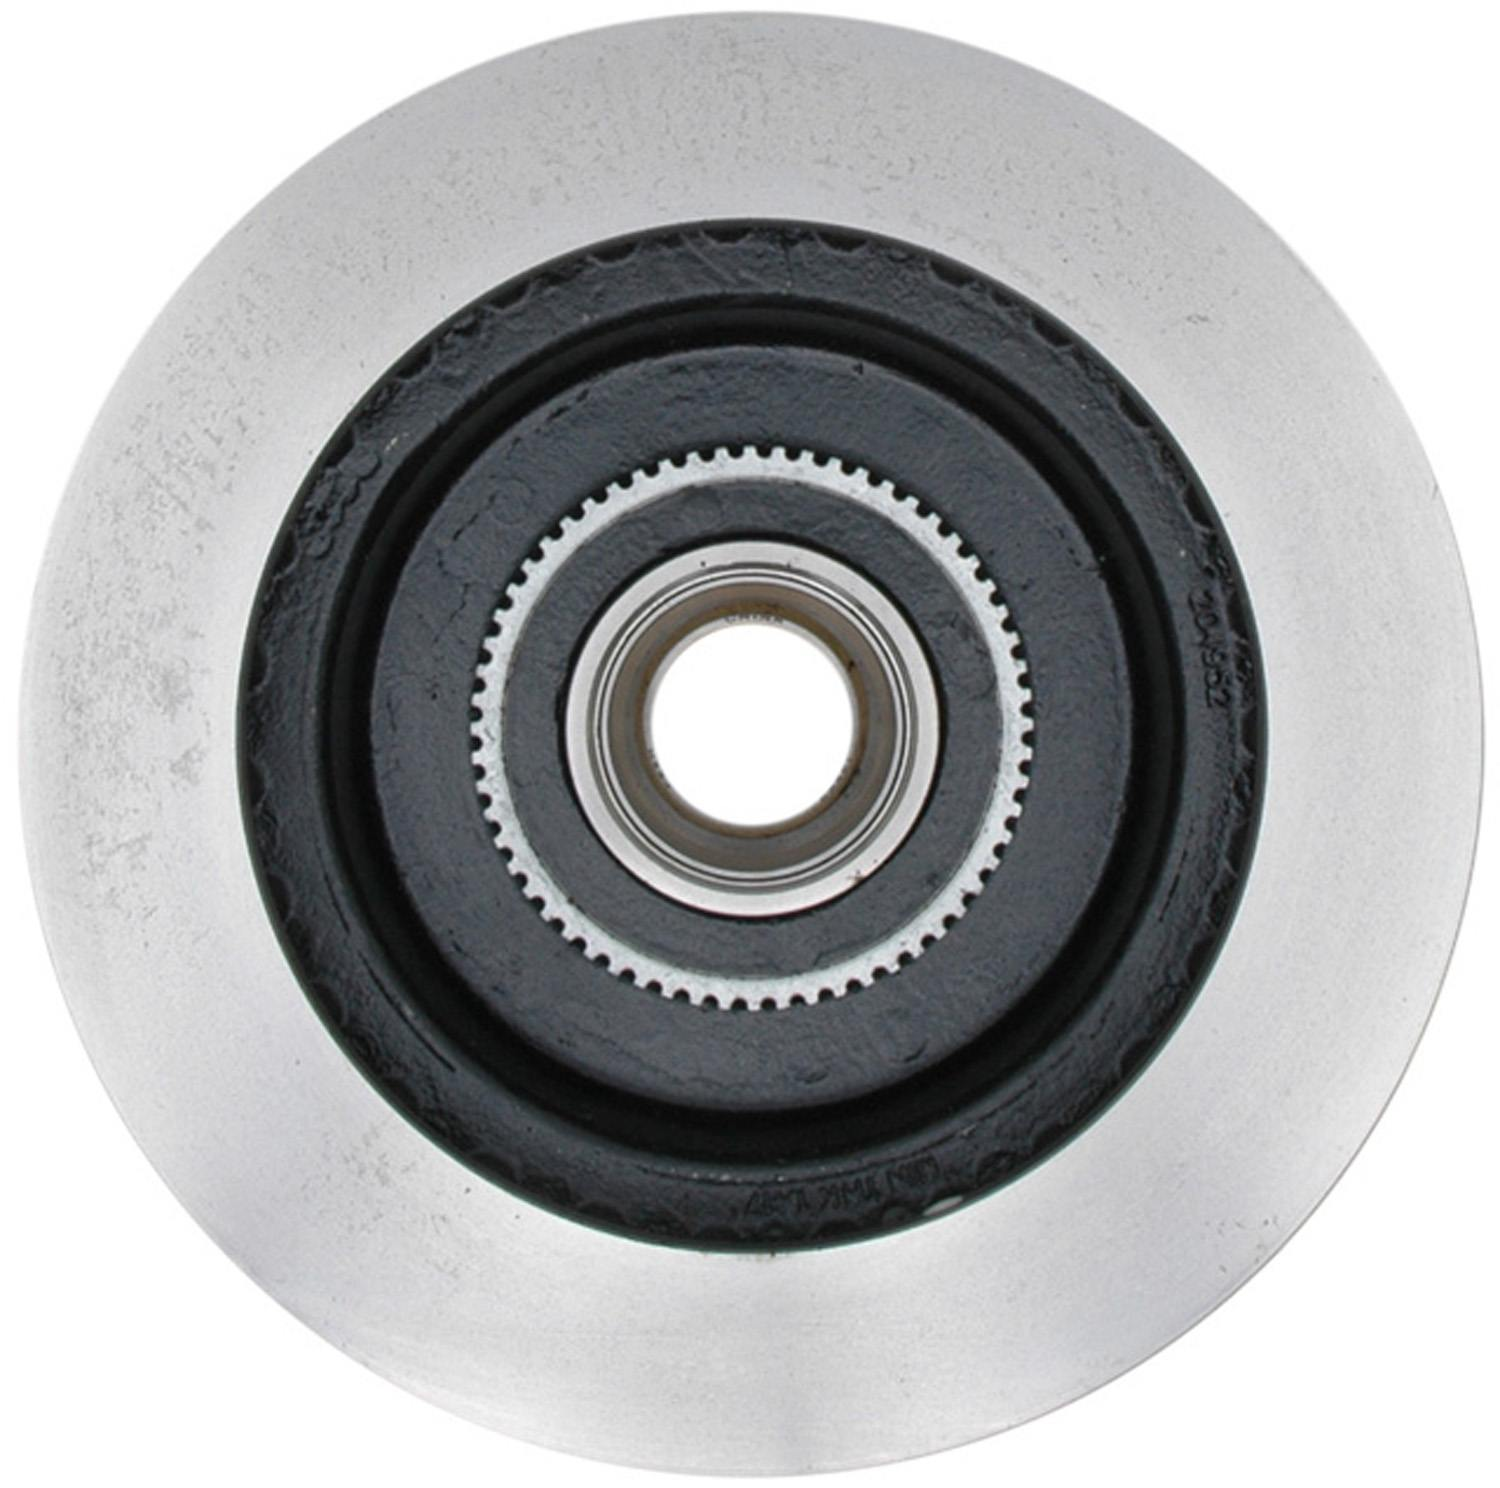 ACDELCO PROFESSIONAL BRAKES - Disc Brake Rotor and Hub Assembly (Front) - ADU 18A957